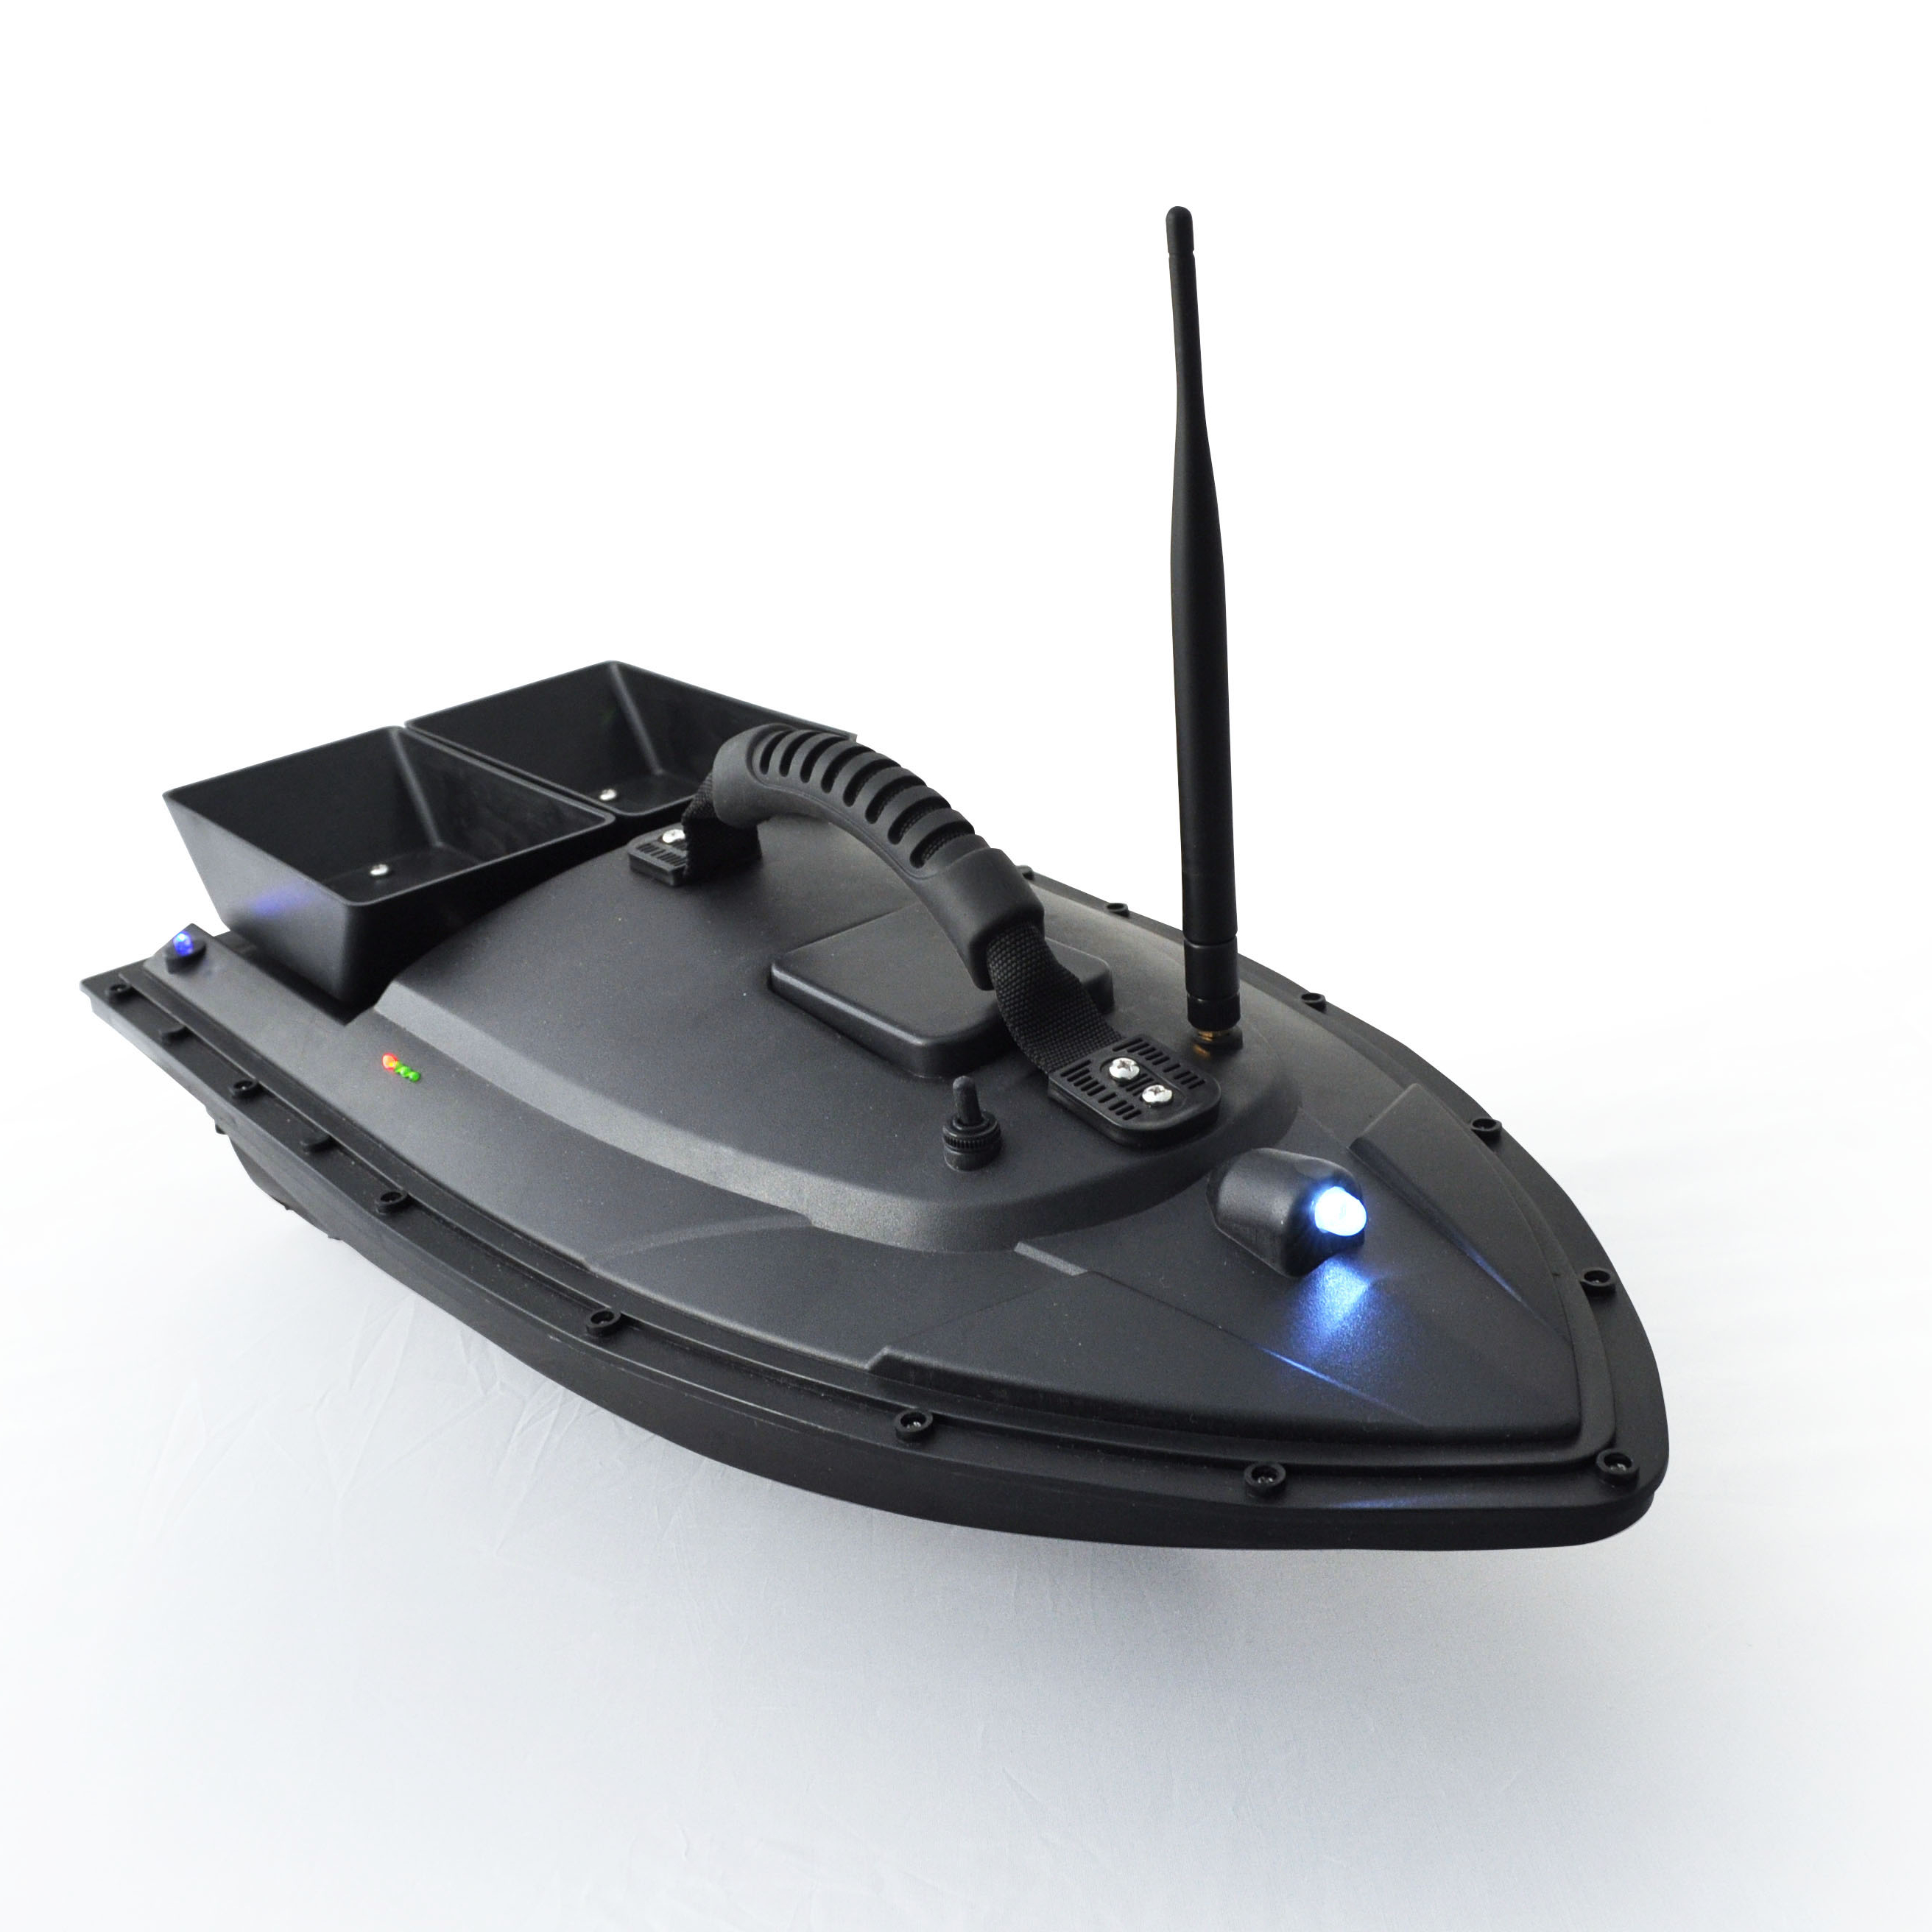 Intelligent RC Fishing Bait Boat Double Motors With 400-500m Remote Control Visual Fish Finder Model Ship Black Mini Speed Boat